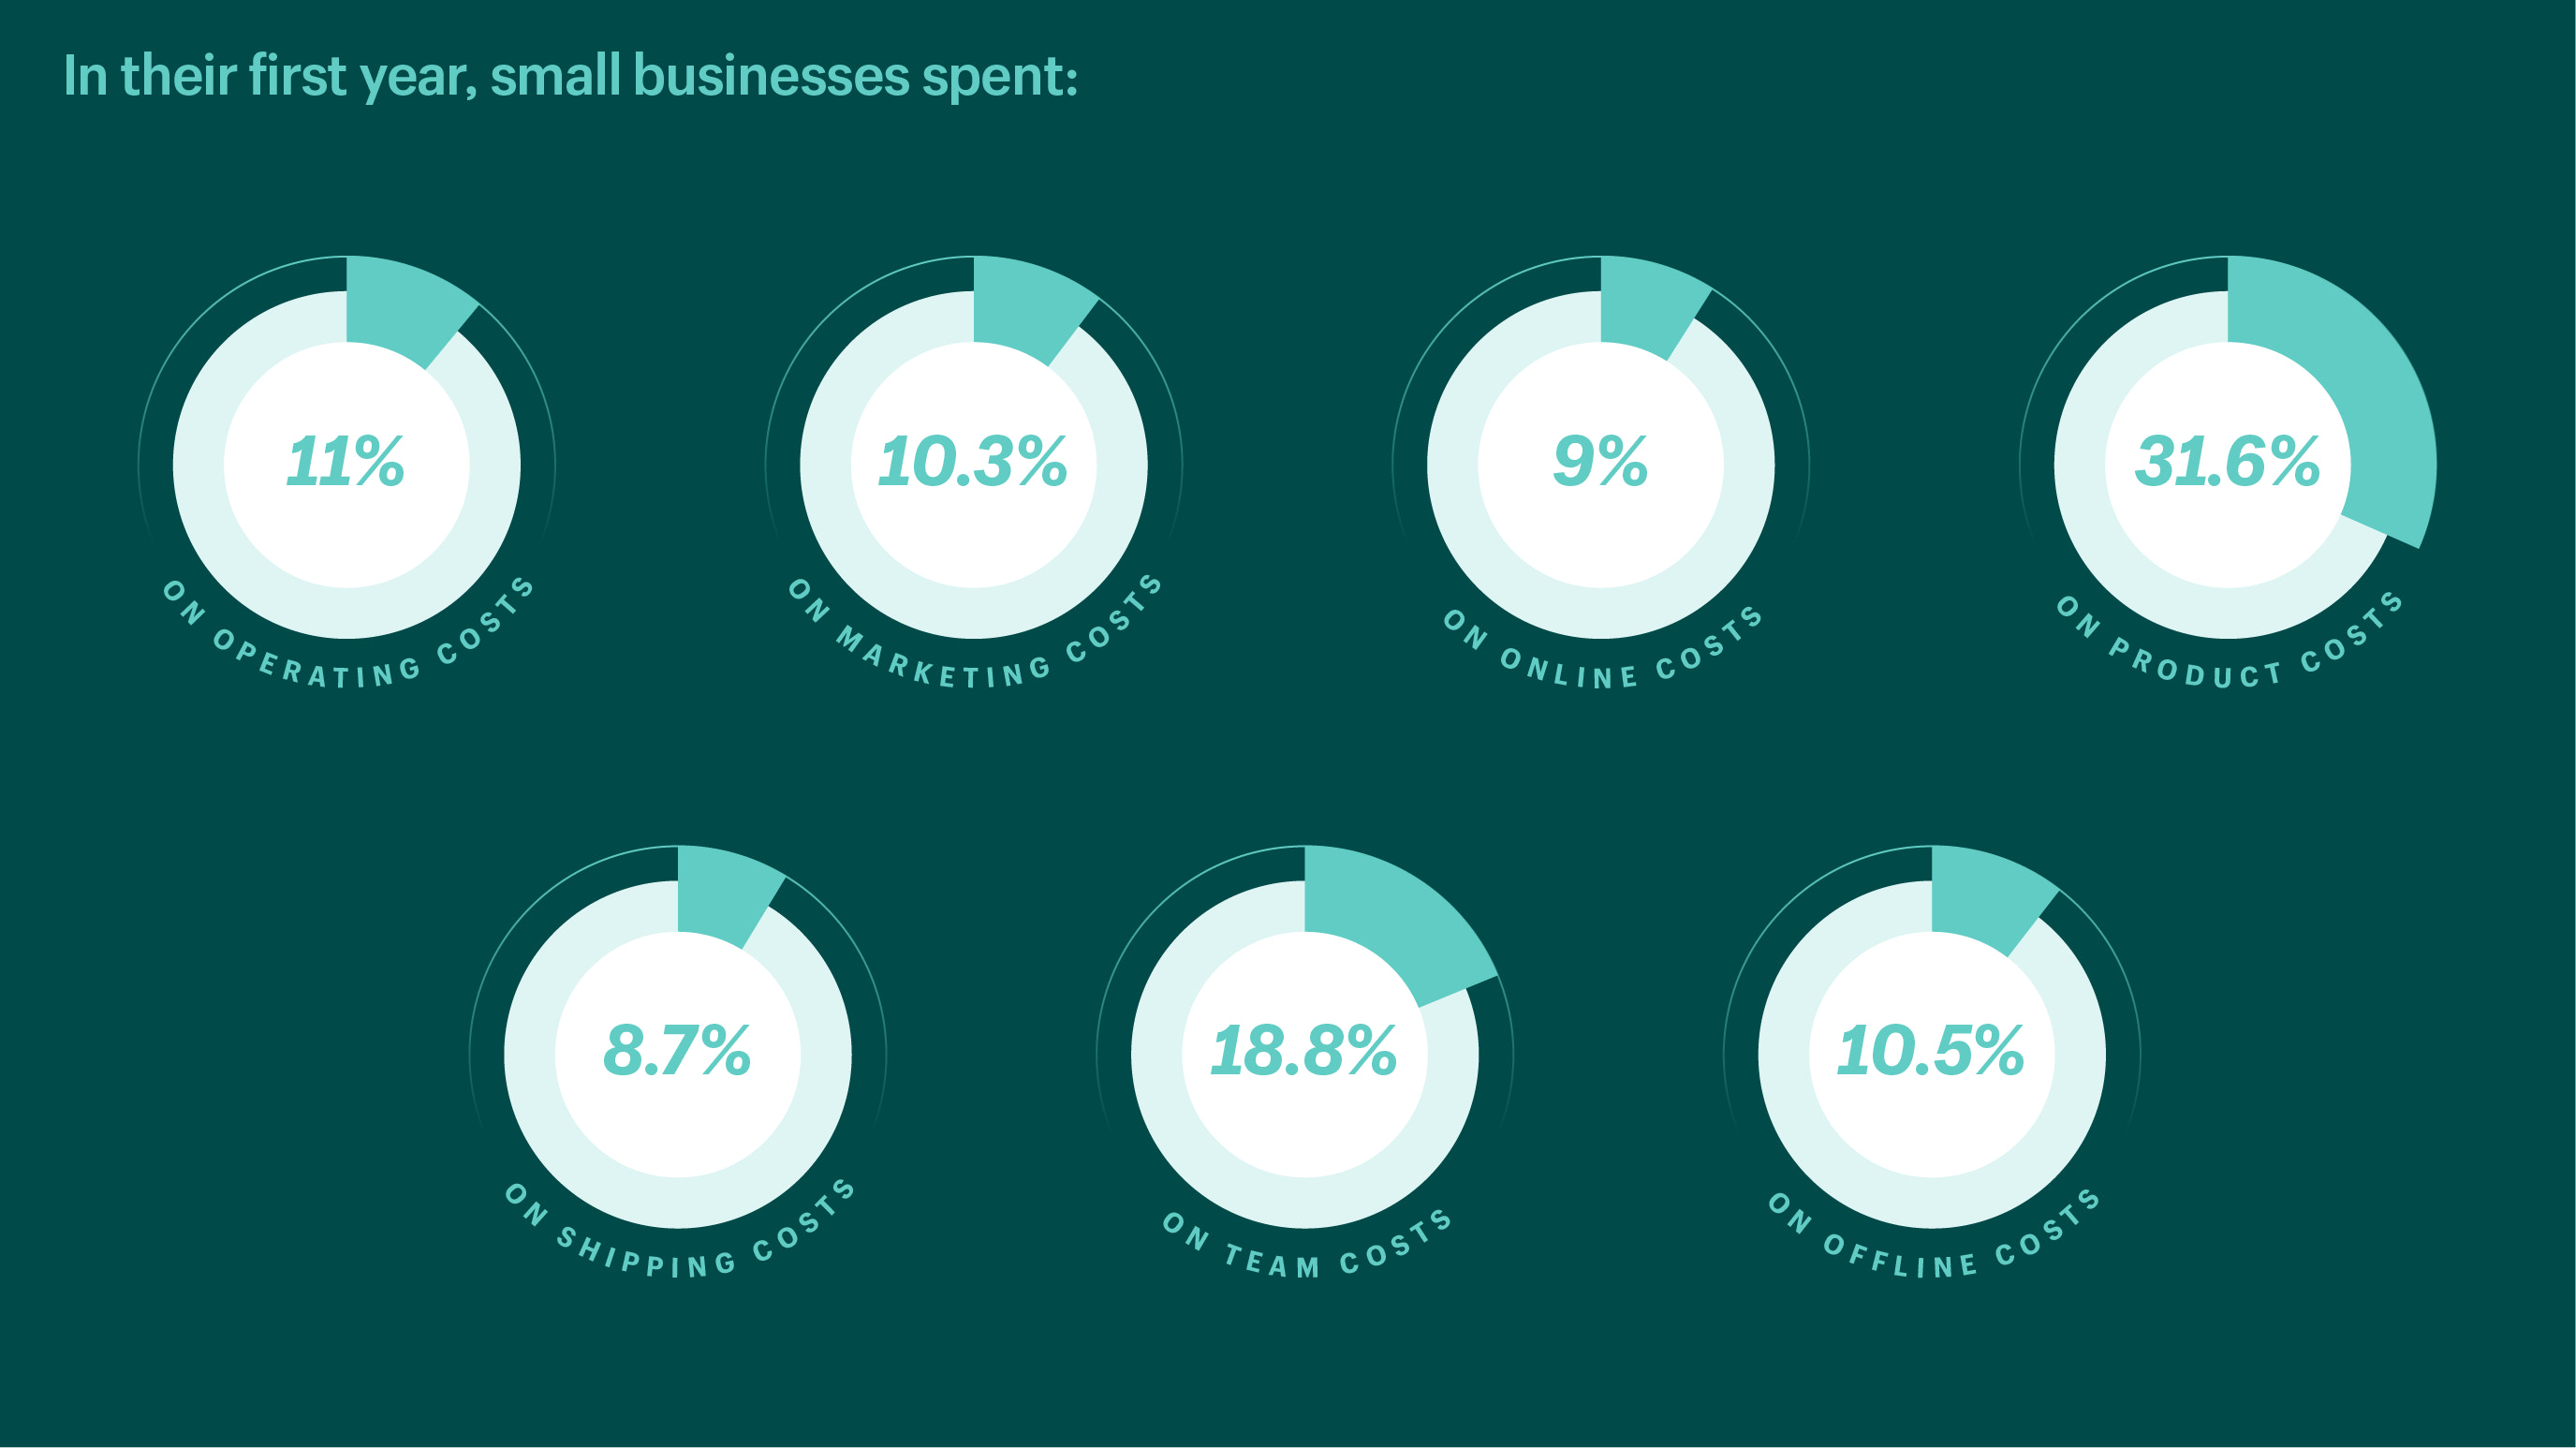 Chart showing that most entrepreneurs spend money on product development, inventory, and marketing in their first year